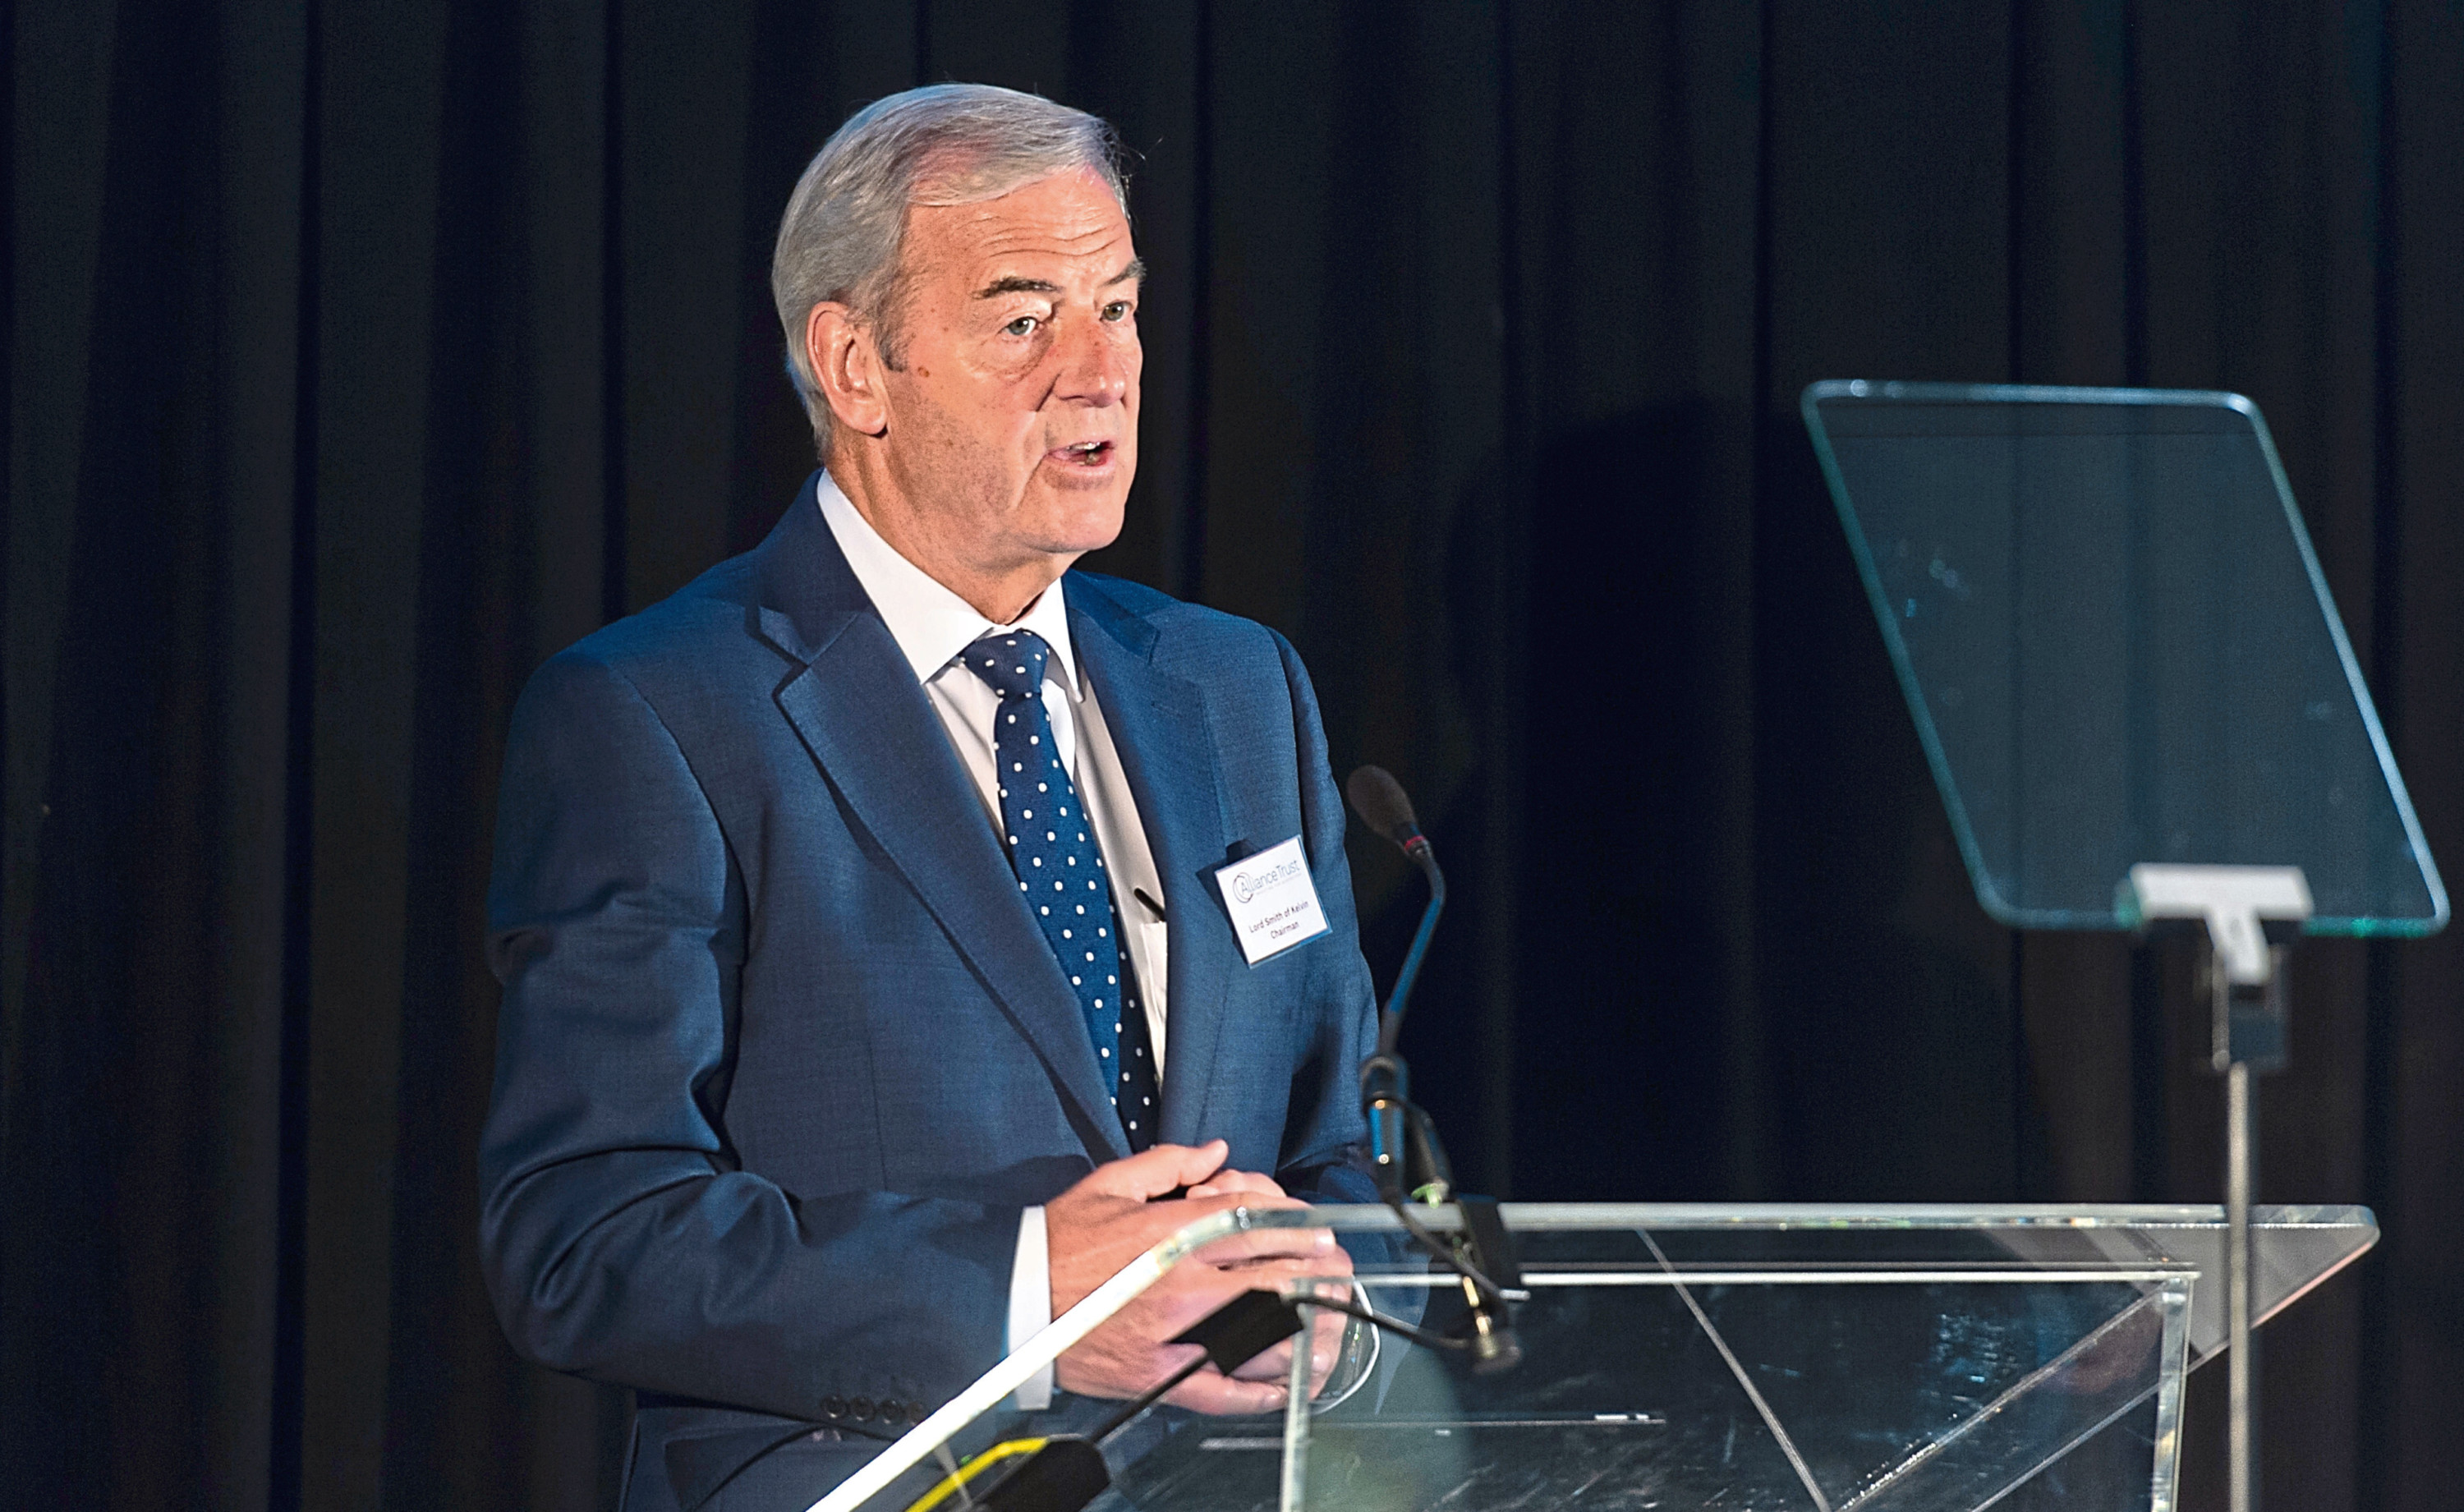 Courier News - Business - Jim Millar story; CR0008580 Alliance Trust AGM pics. Picture Shows; Lord Smith of Kelvin addresses the AGM, Apex City Quay Hotel, West Victoria Dock Road, Dundee, 25th April 2019. Pic by Kim Cessford / DCT Media